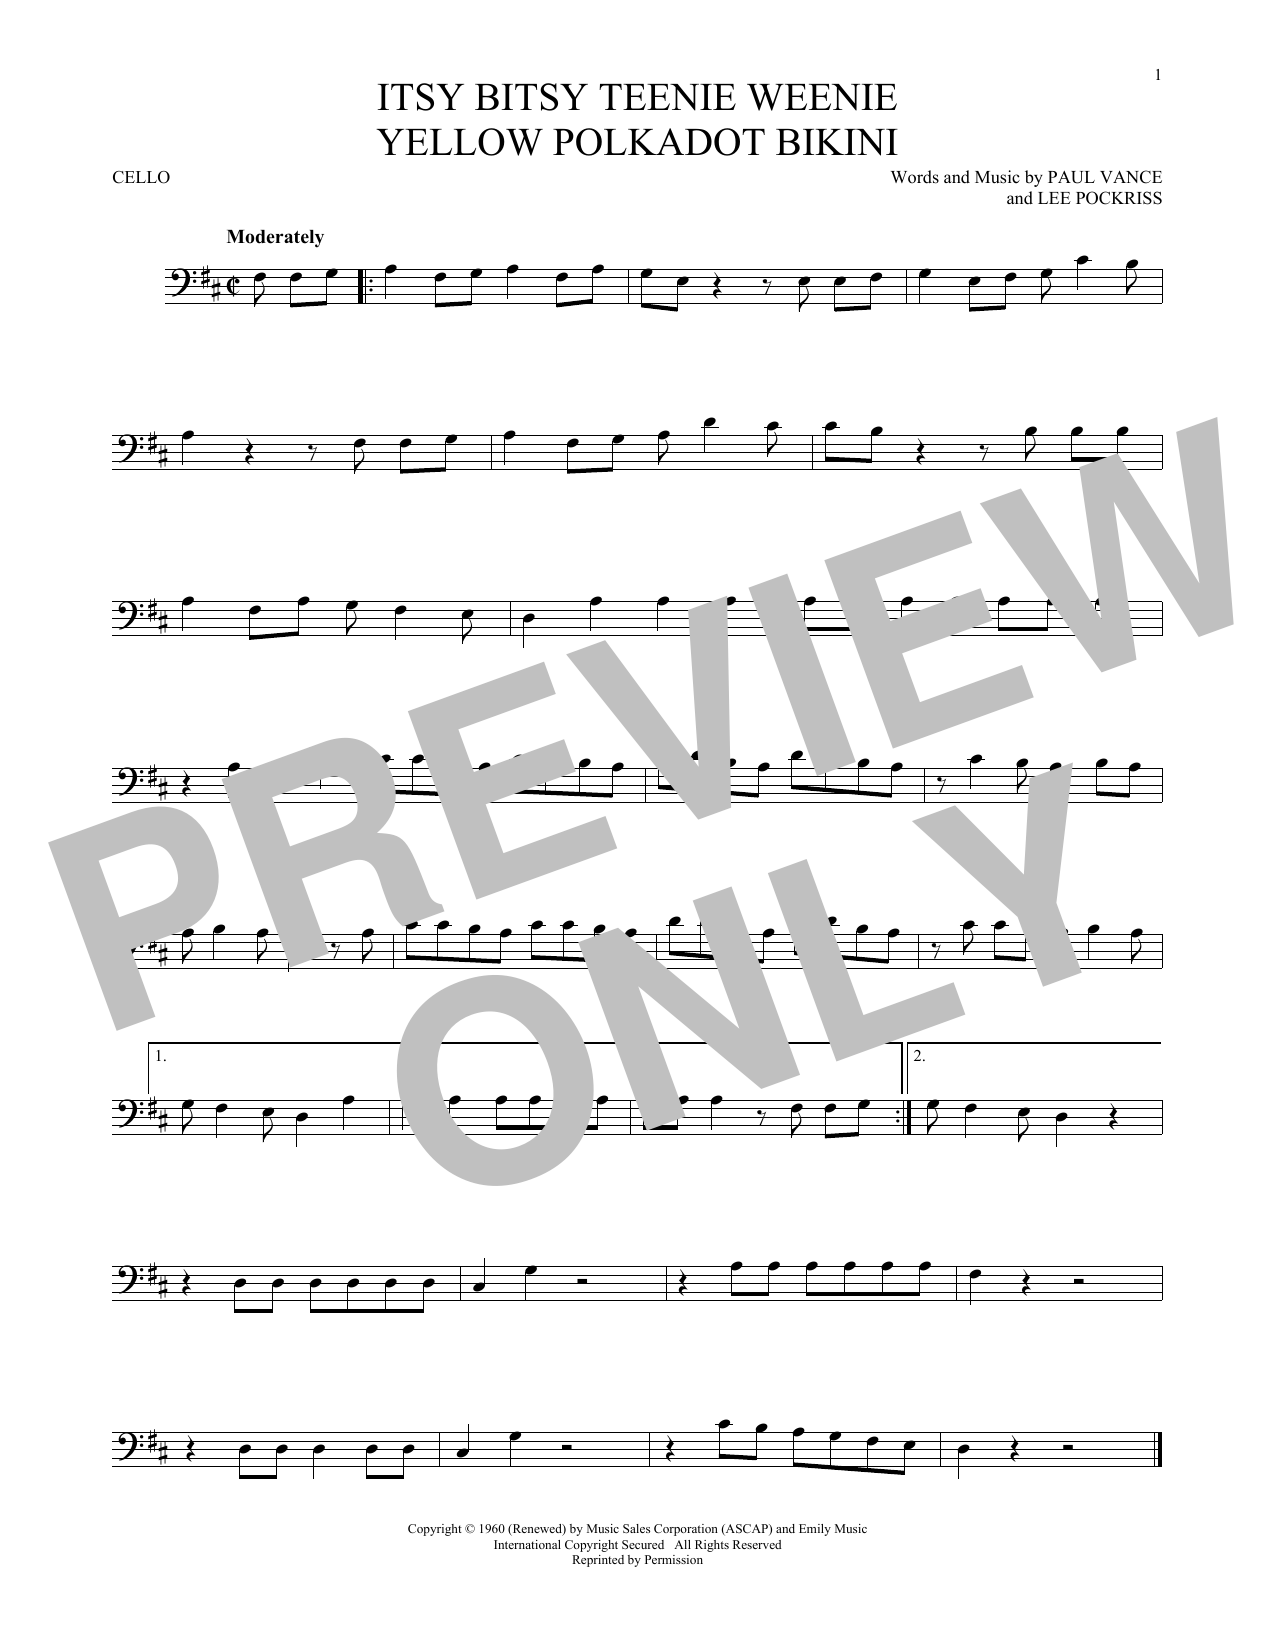 Itsy Bitsy Teenie Weenie Yellow Polkadot Bikini Sheet Music